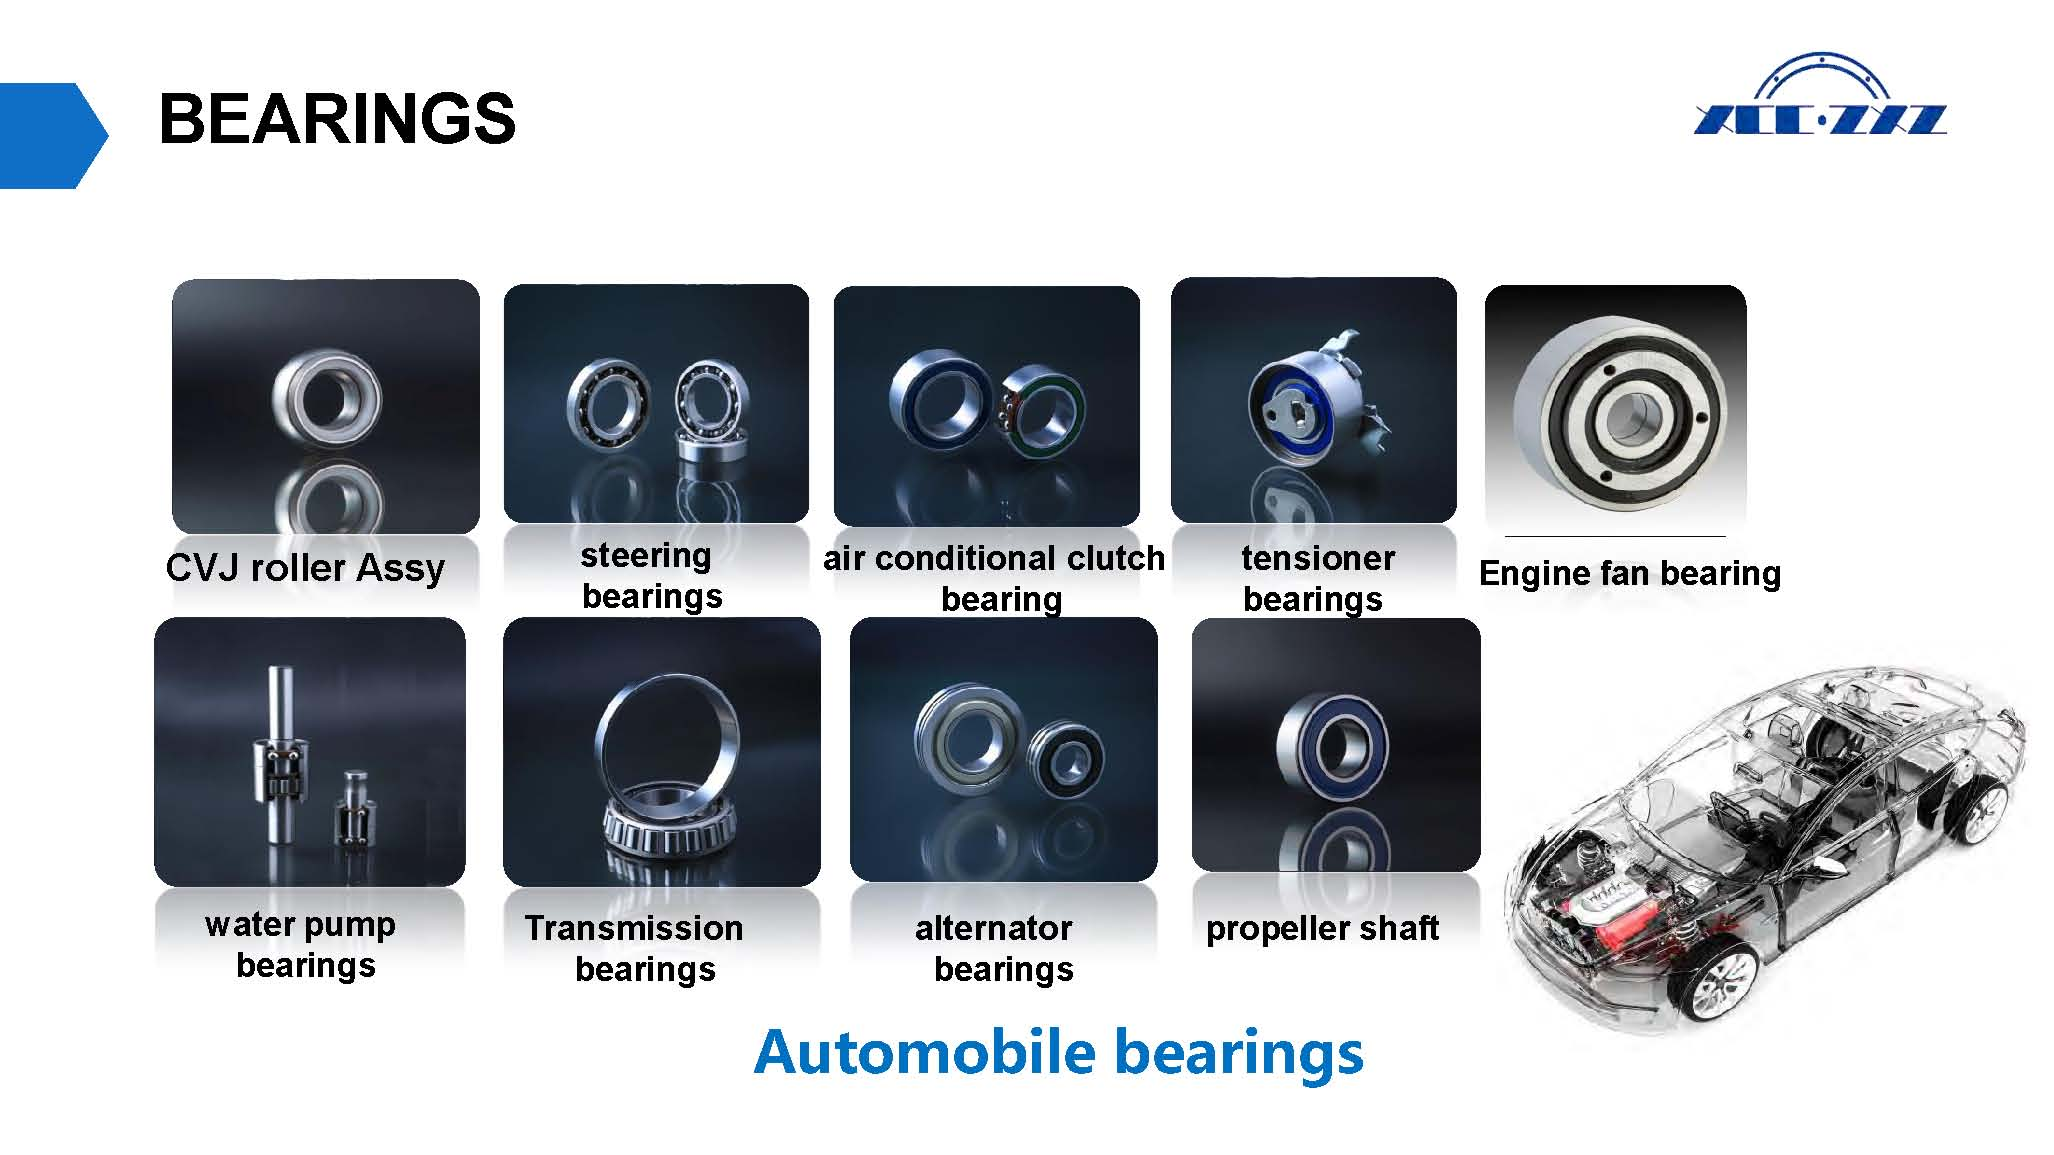 Automobile bearings